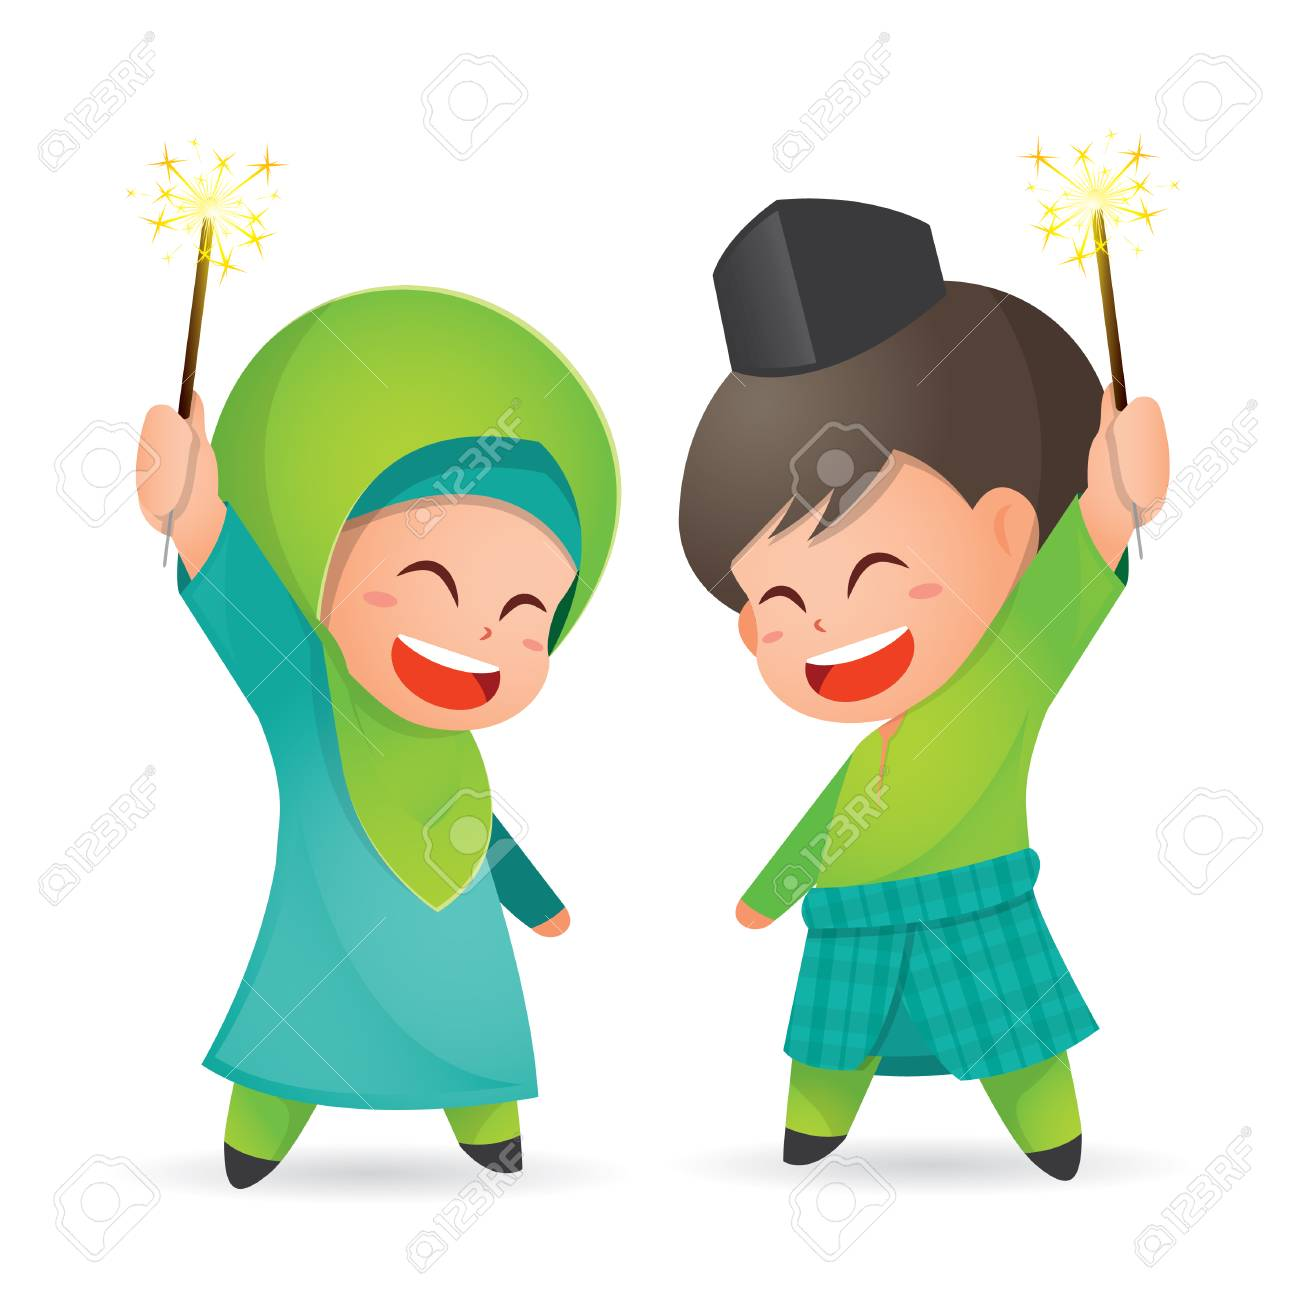 Selamat Hari Raya Aidilfitri Vector Illustration Cute Muslim Royalty Free Cliparts Vectors And Stock Illustration Image 102618267